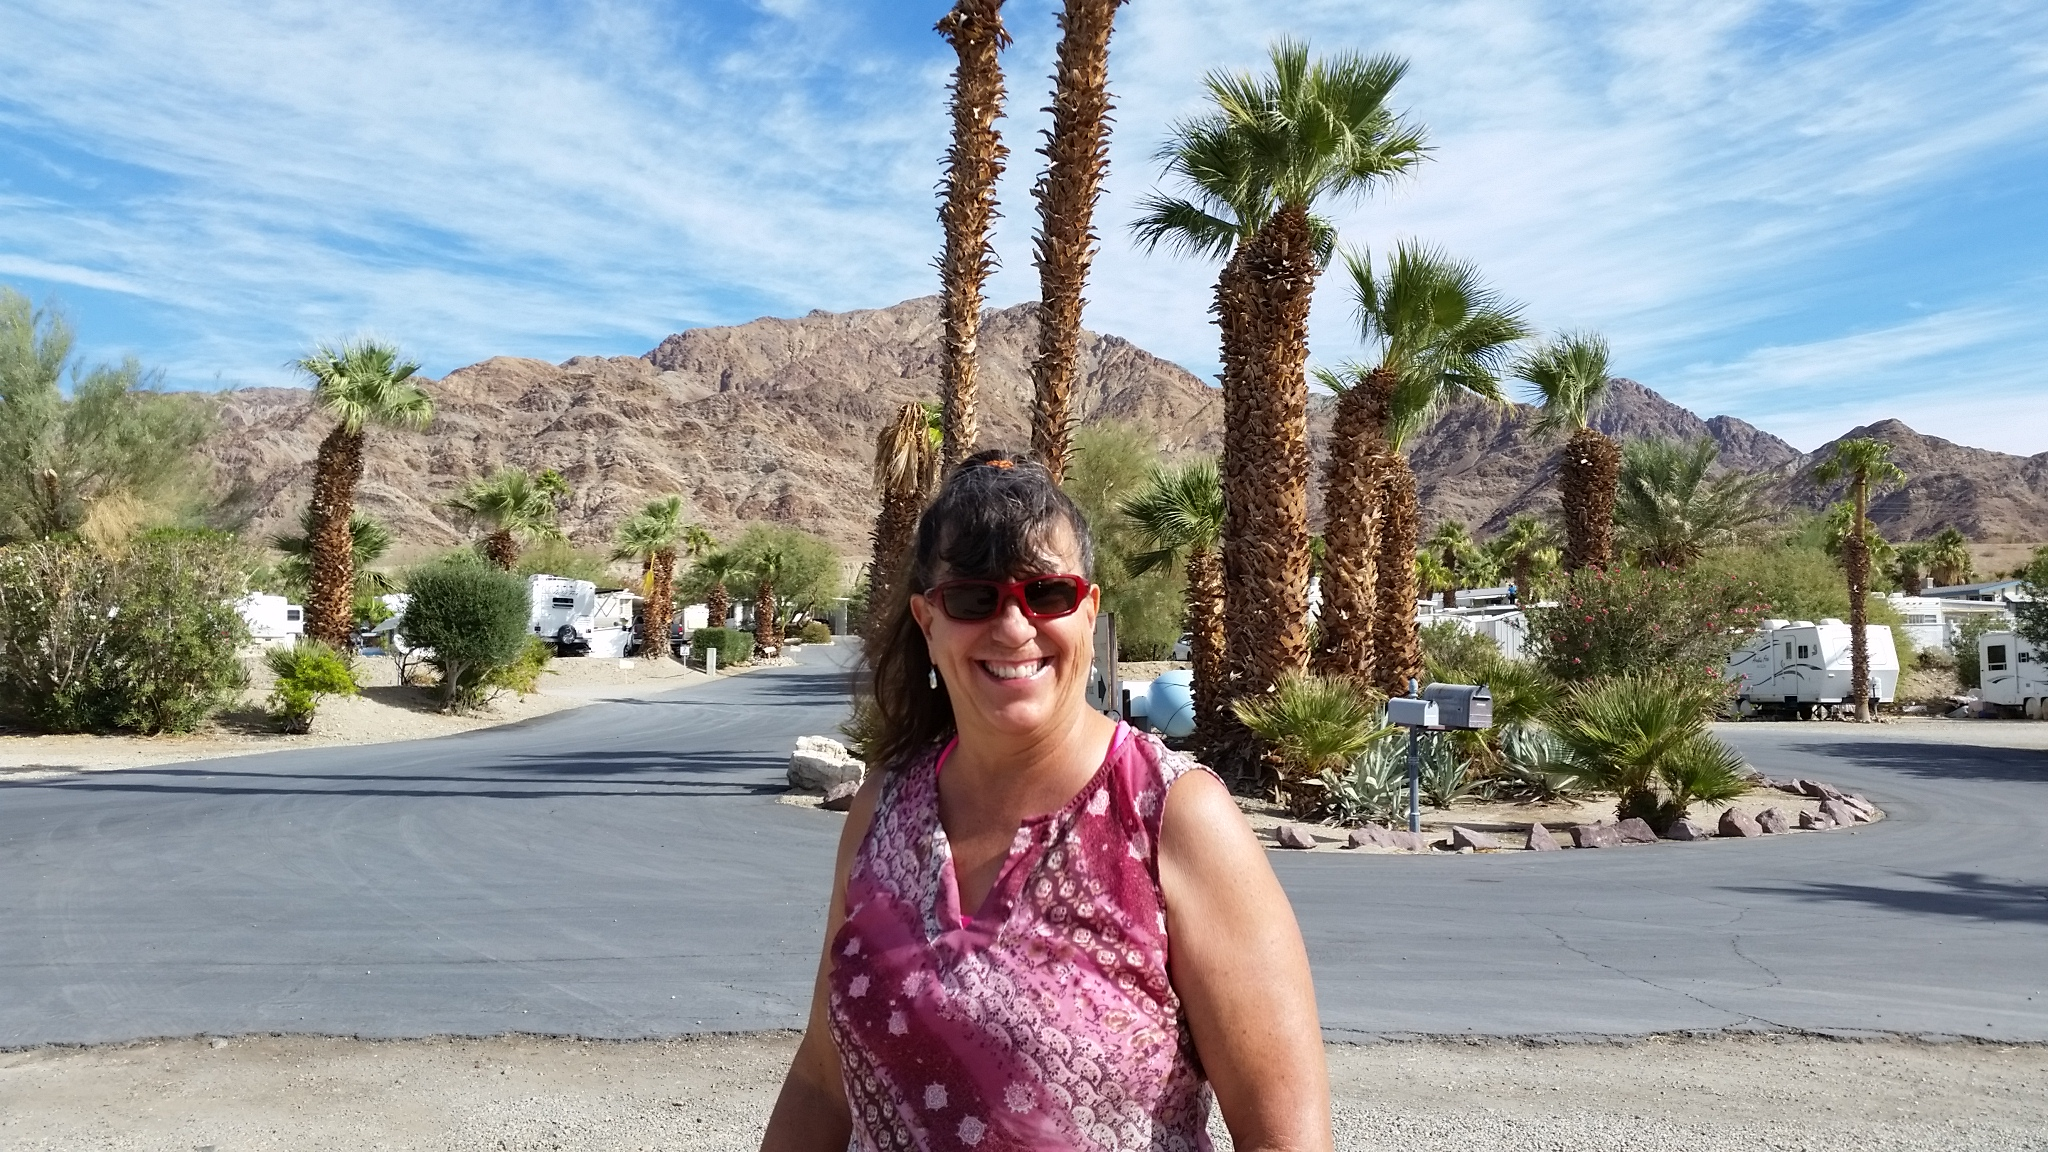 2017-11-03 Sherry at Bashfords RV Park 11.14.48